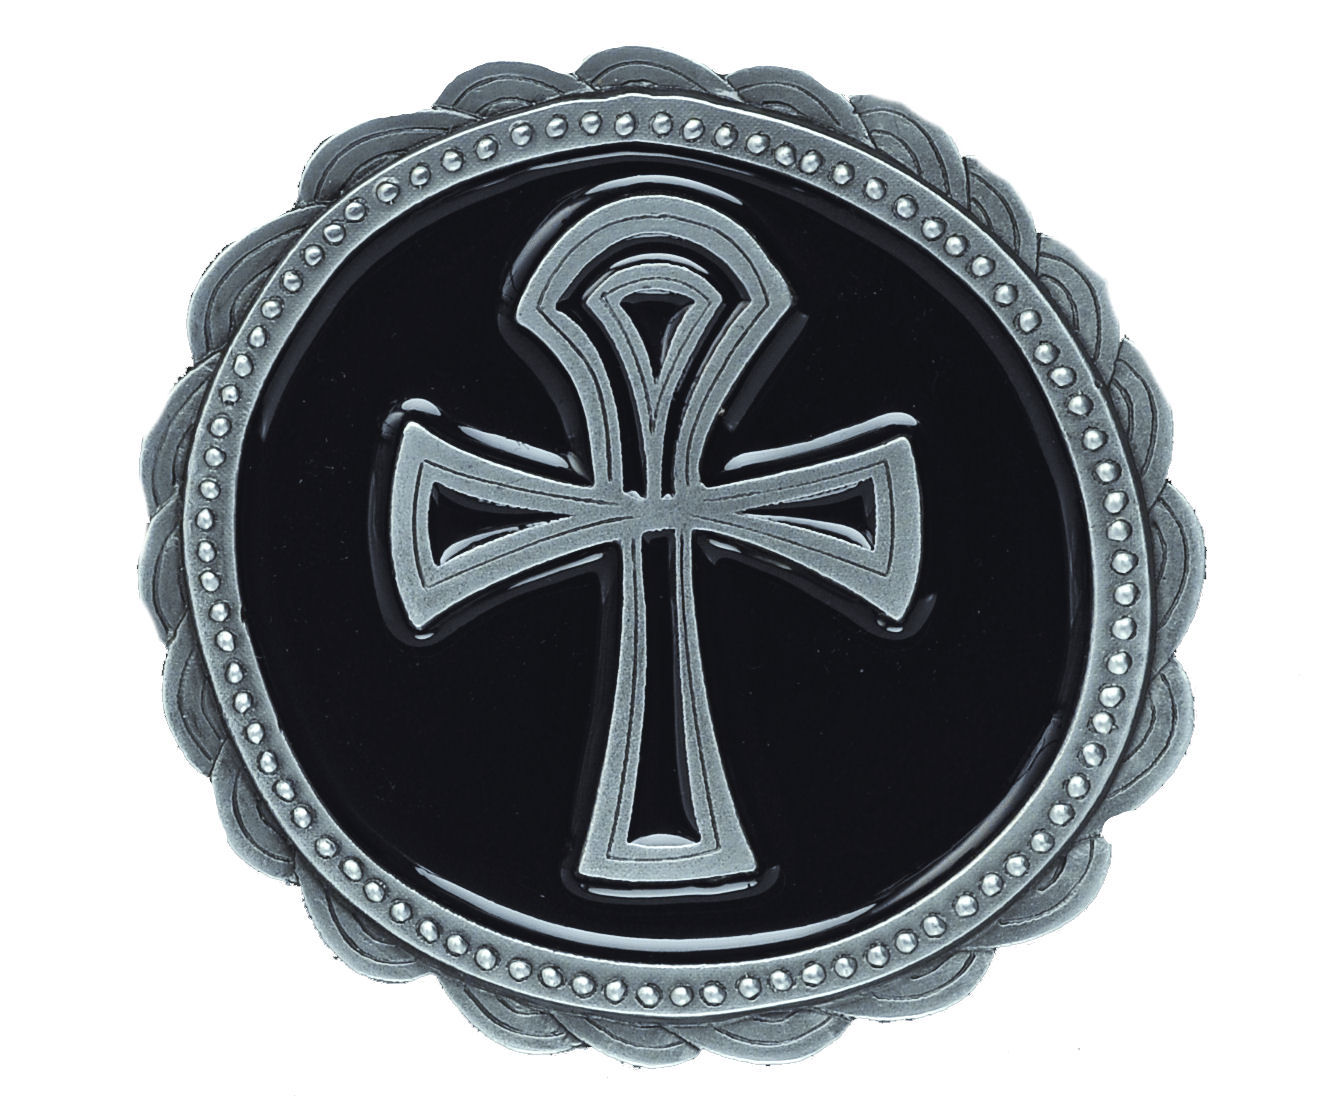 amon ankh cross black